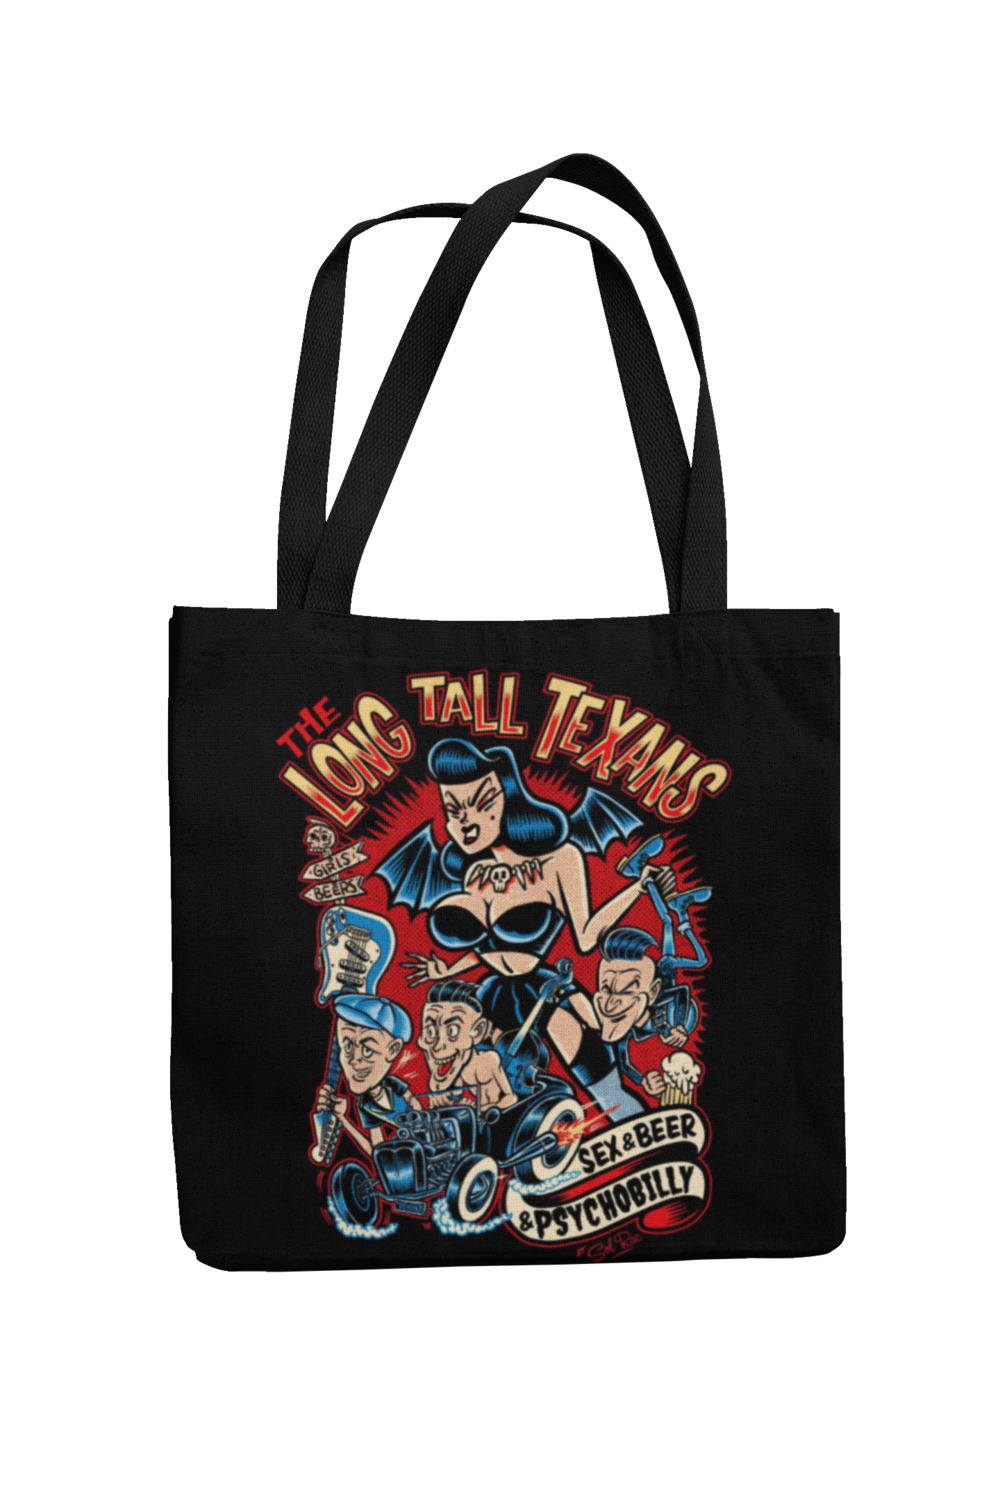 LONG TALL TEXANS Cotton Bag  sex & beer & psychobilly